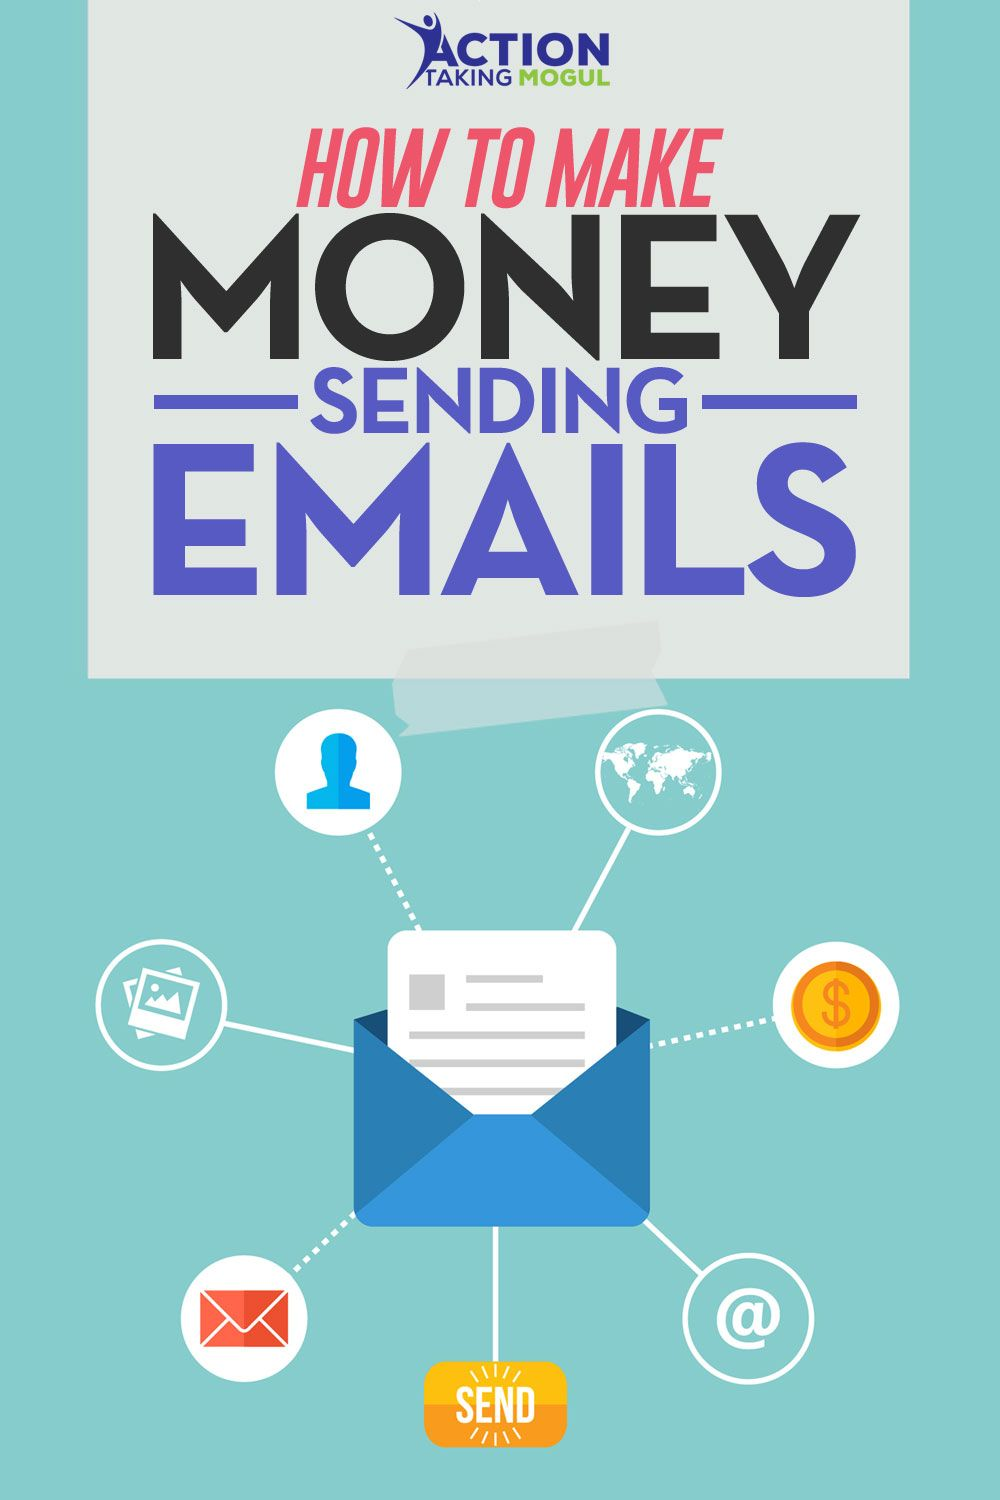 How to make money sending emails online in a very easy way